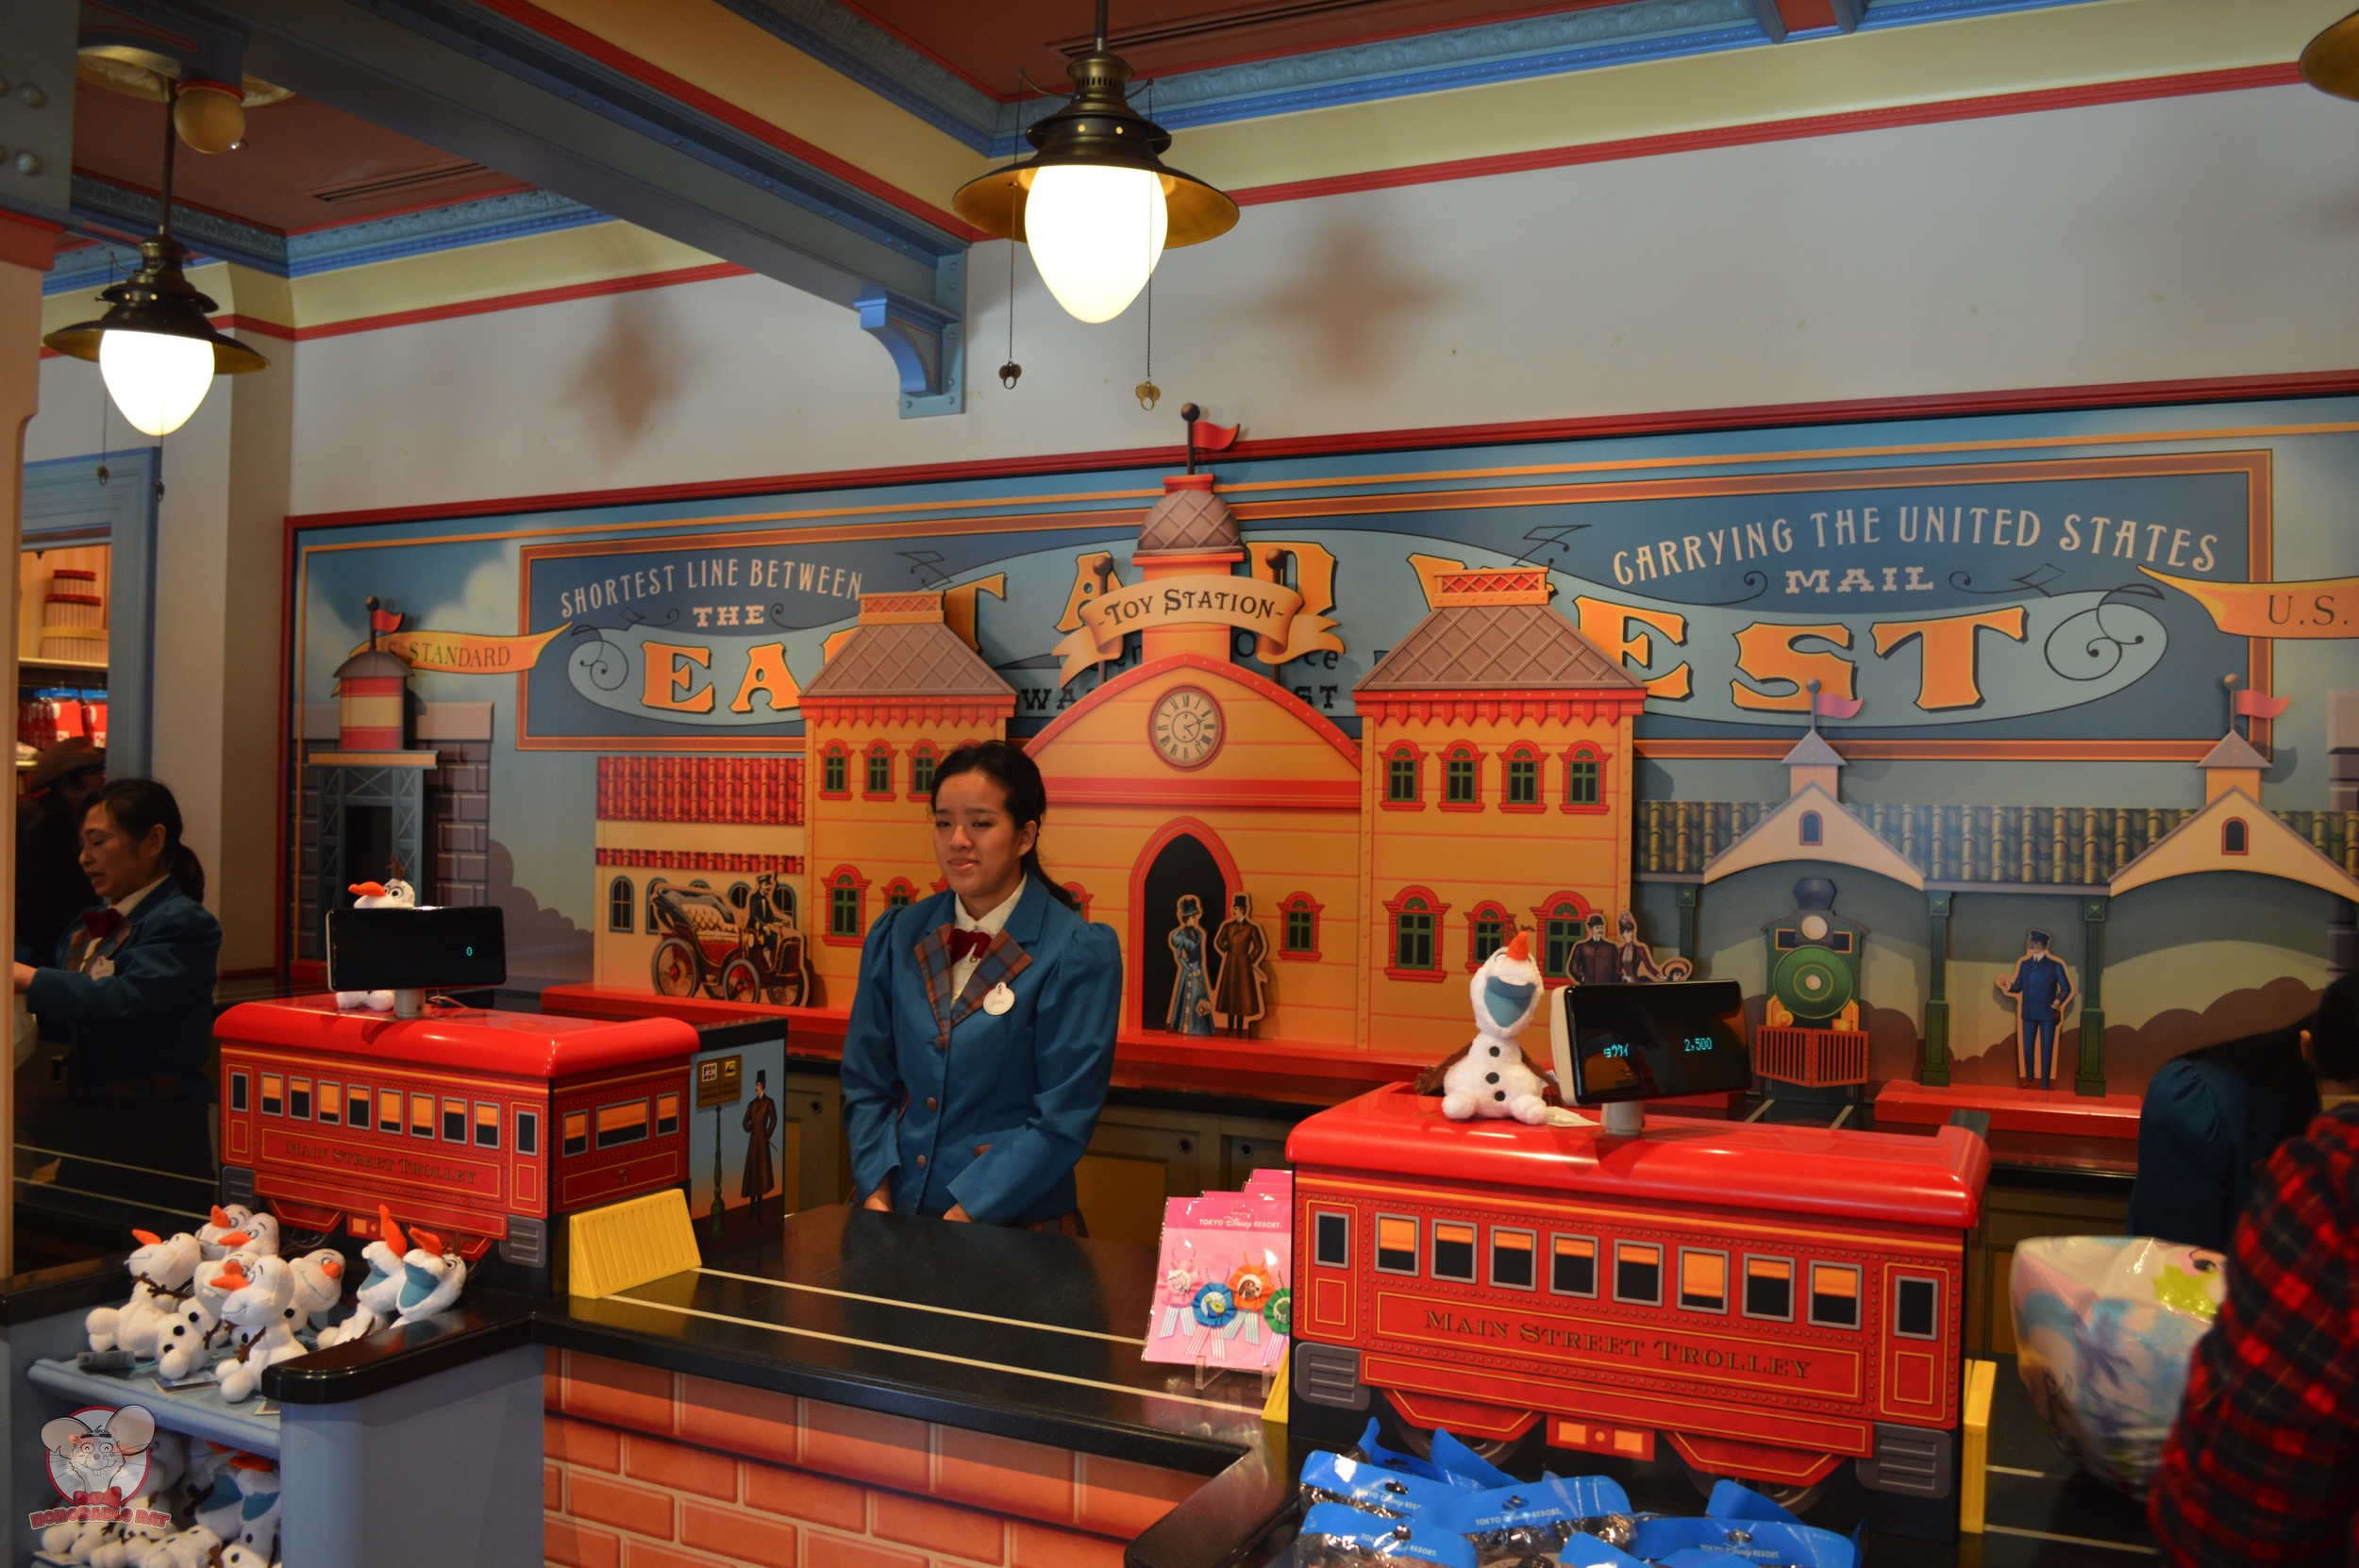 Check out counter at Toy Station